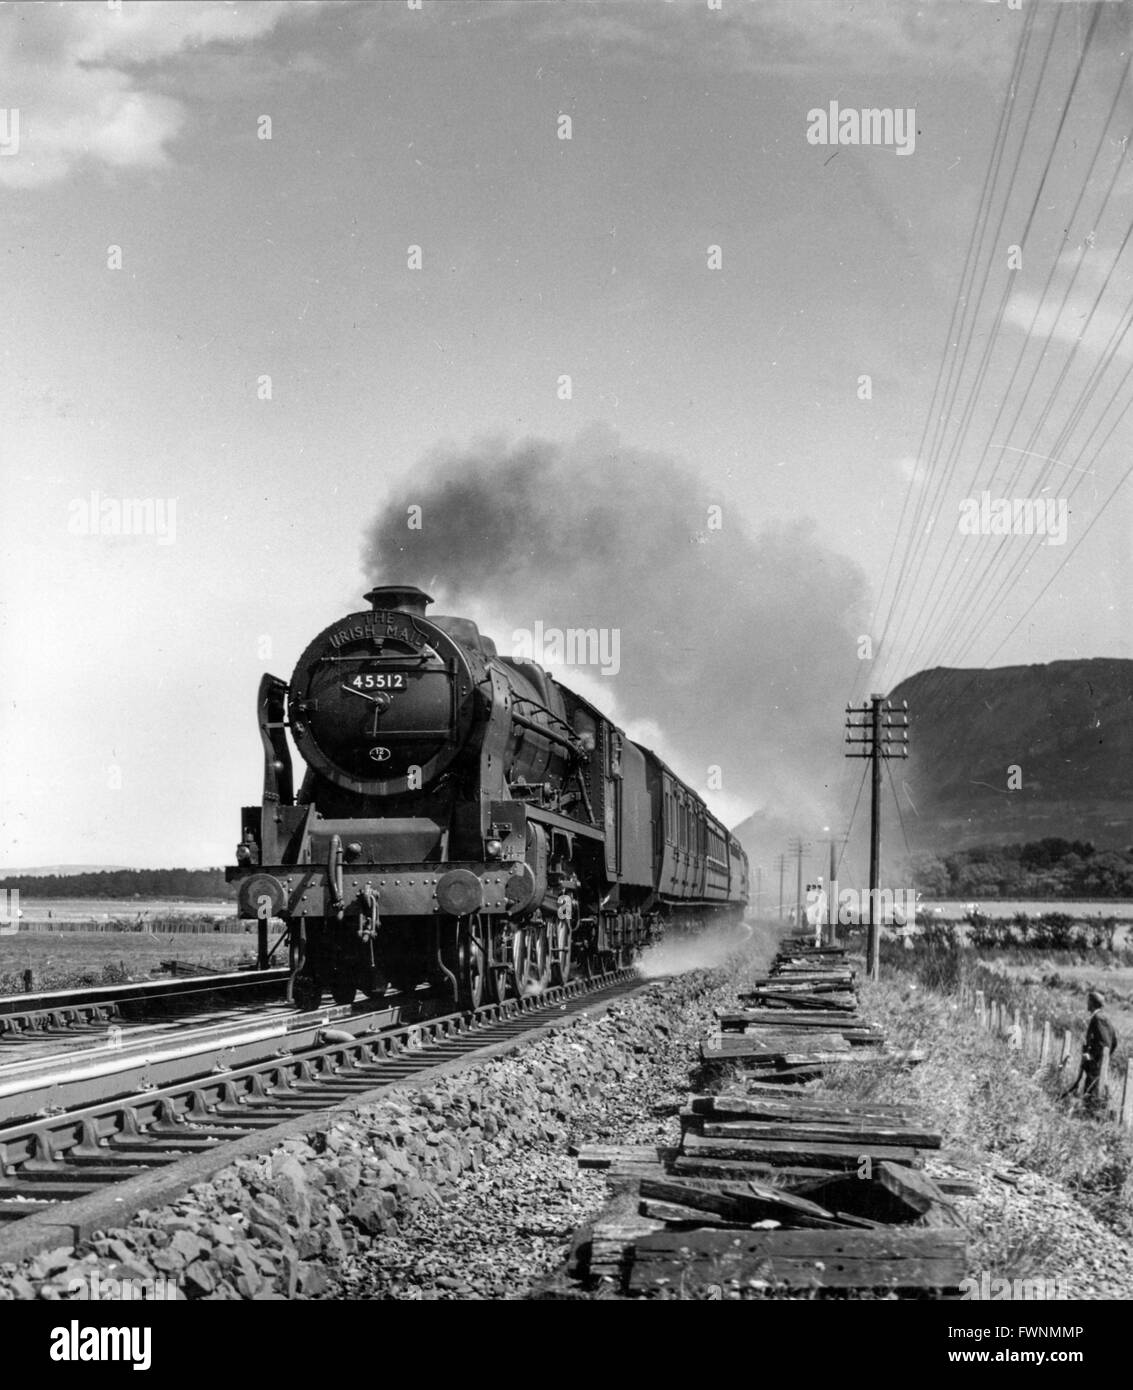 Arthur Mace's description of this picture of Patriot No 45512 'Bunsen' reads The Irish Mail in a hurry. - Stock Image